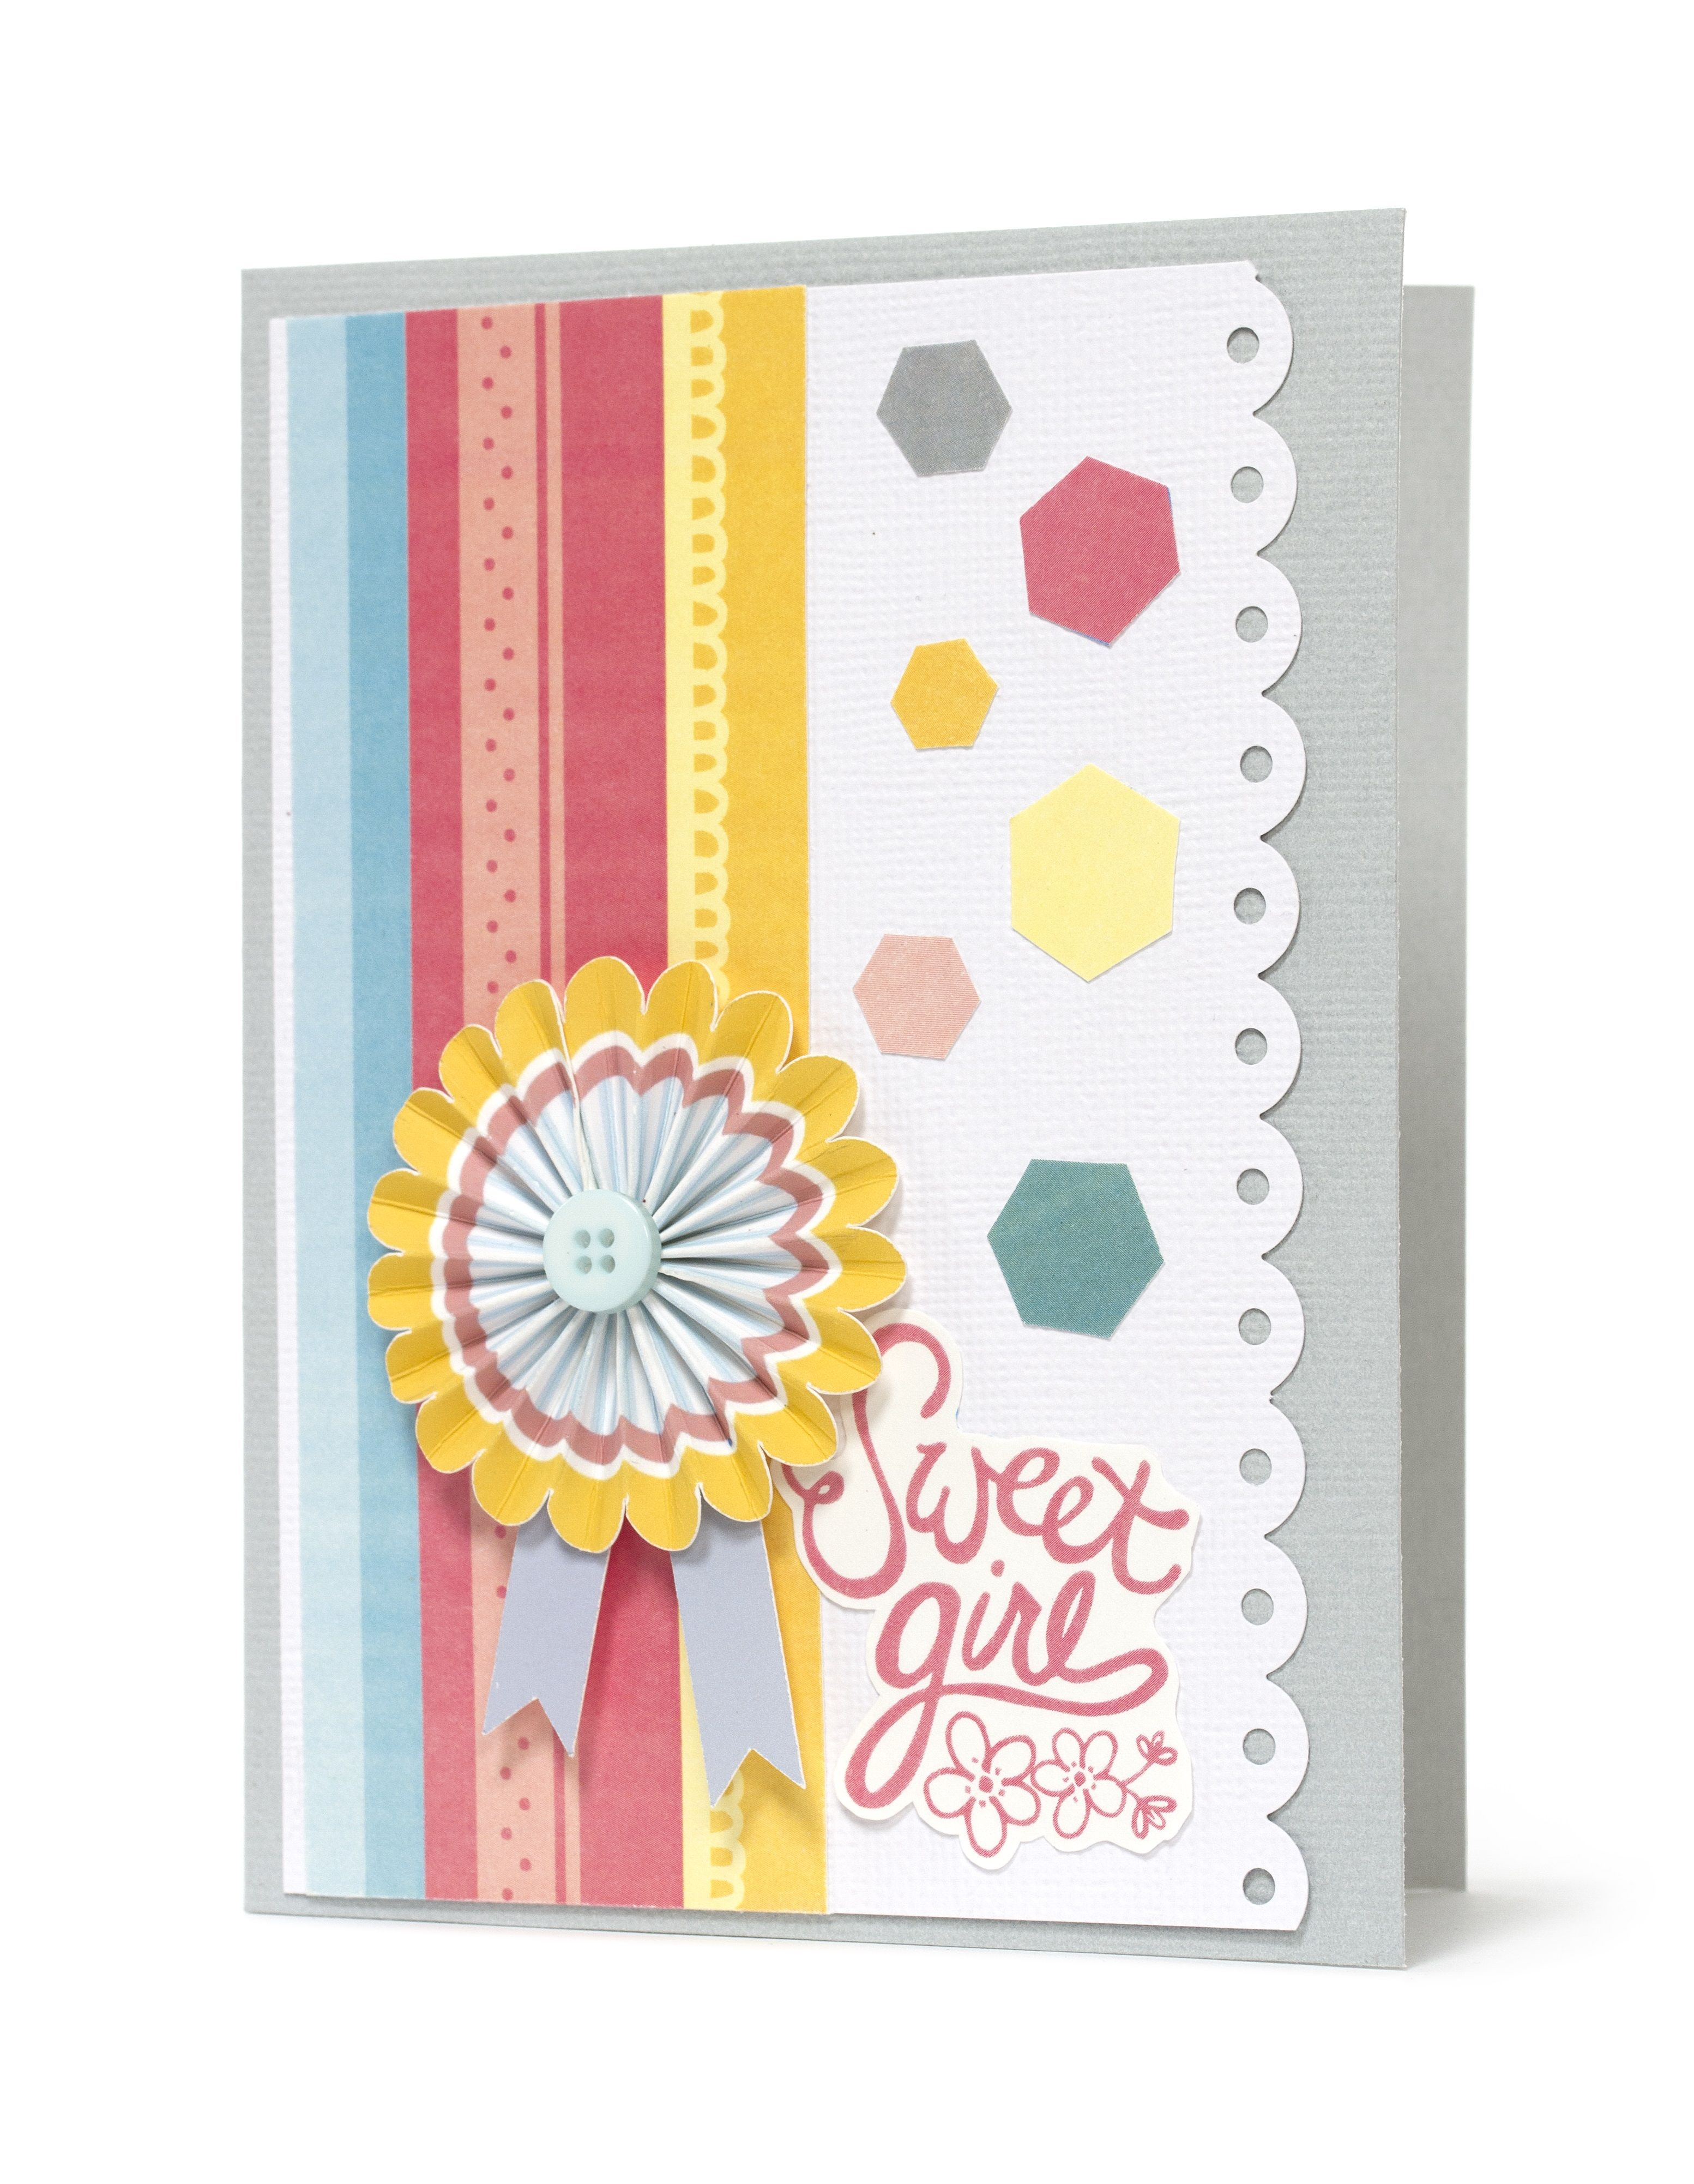 Sweet girl card inspiration from my girl collection my girl